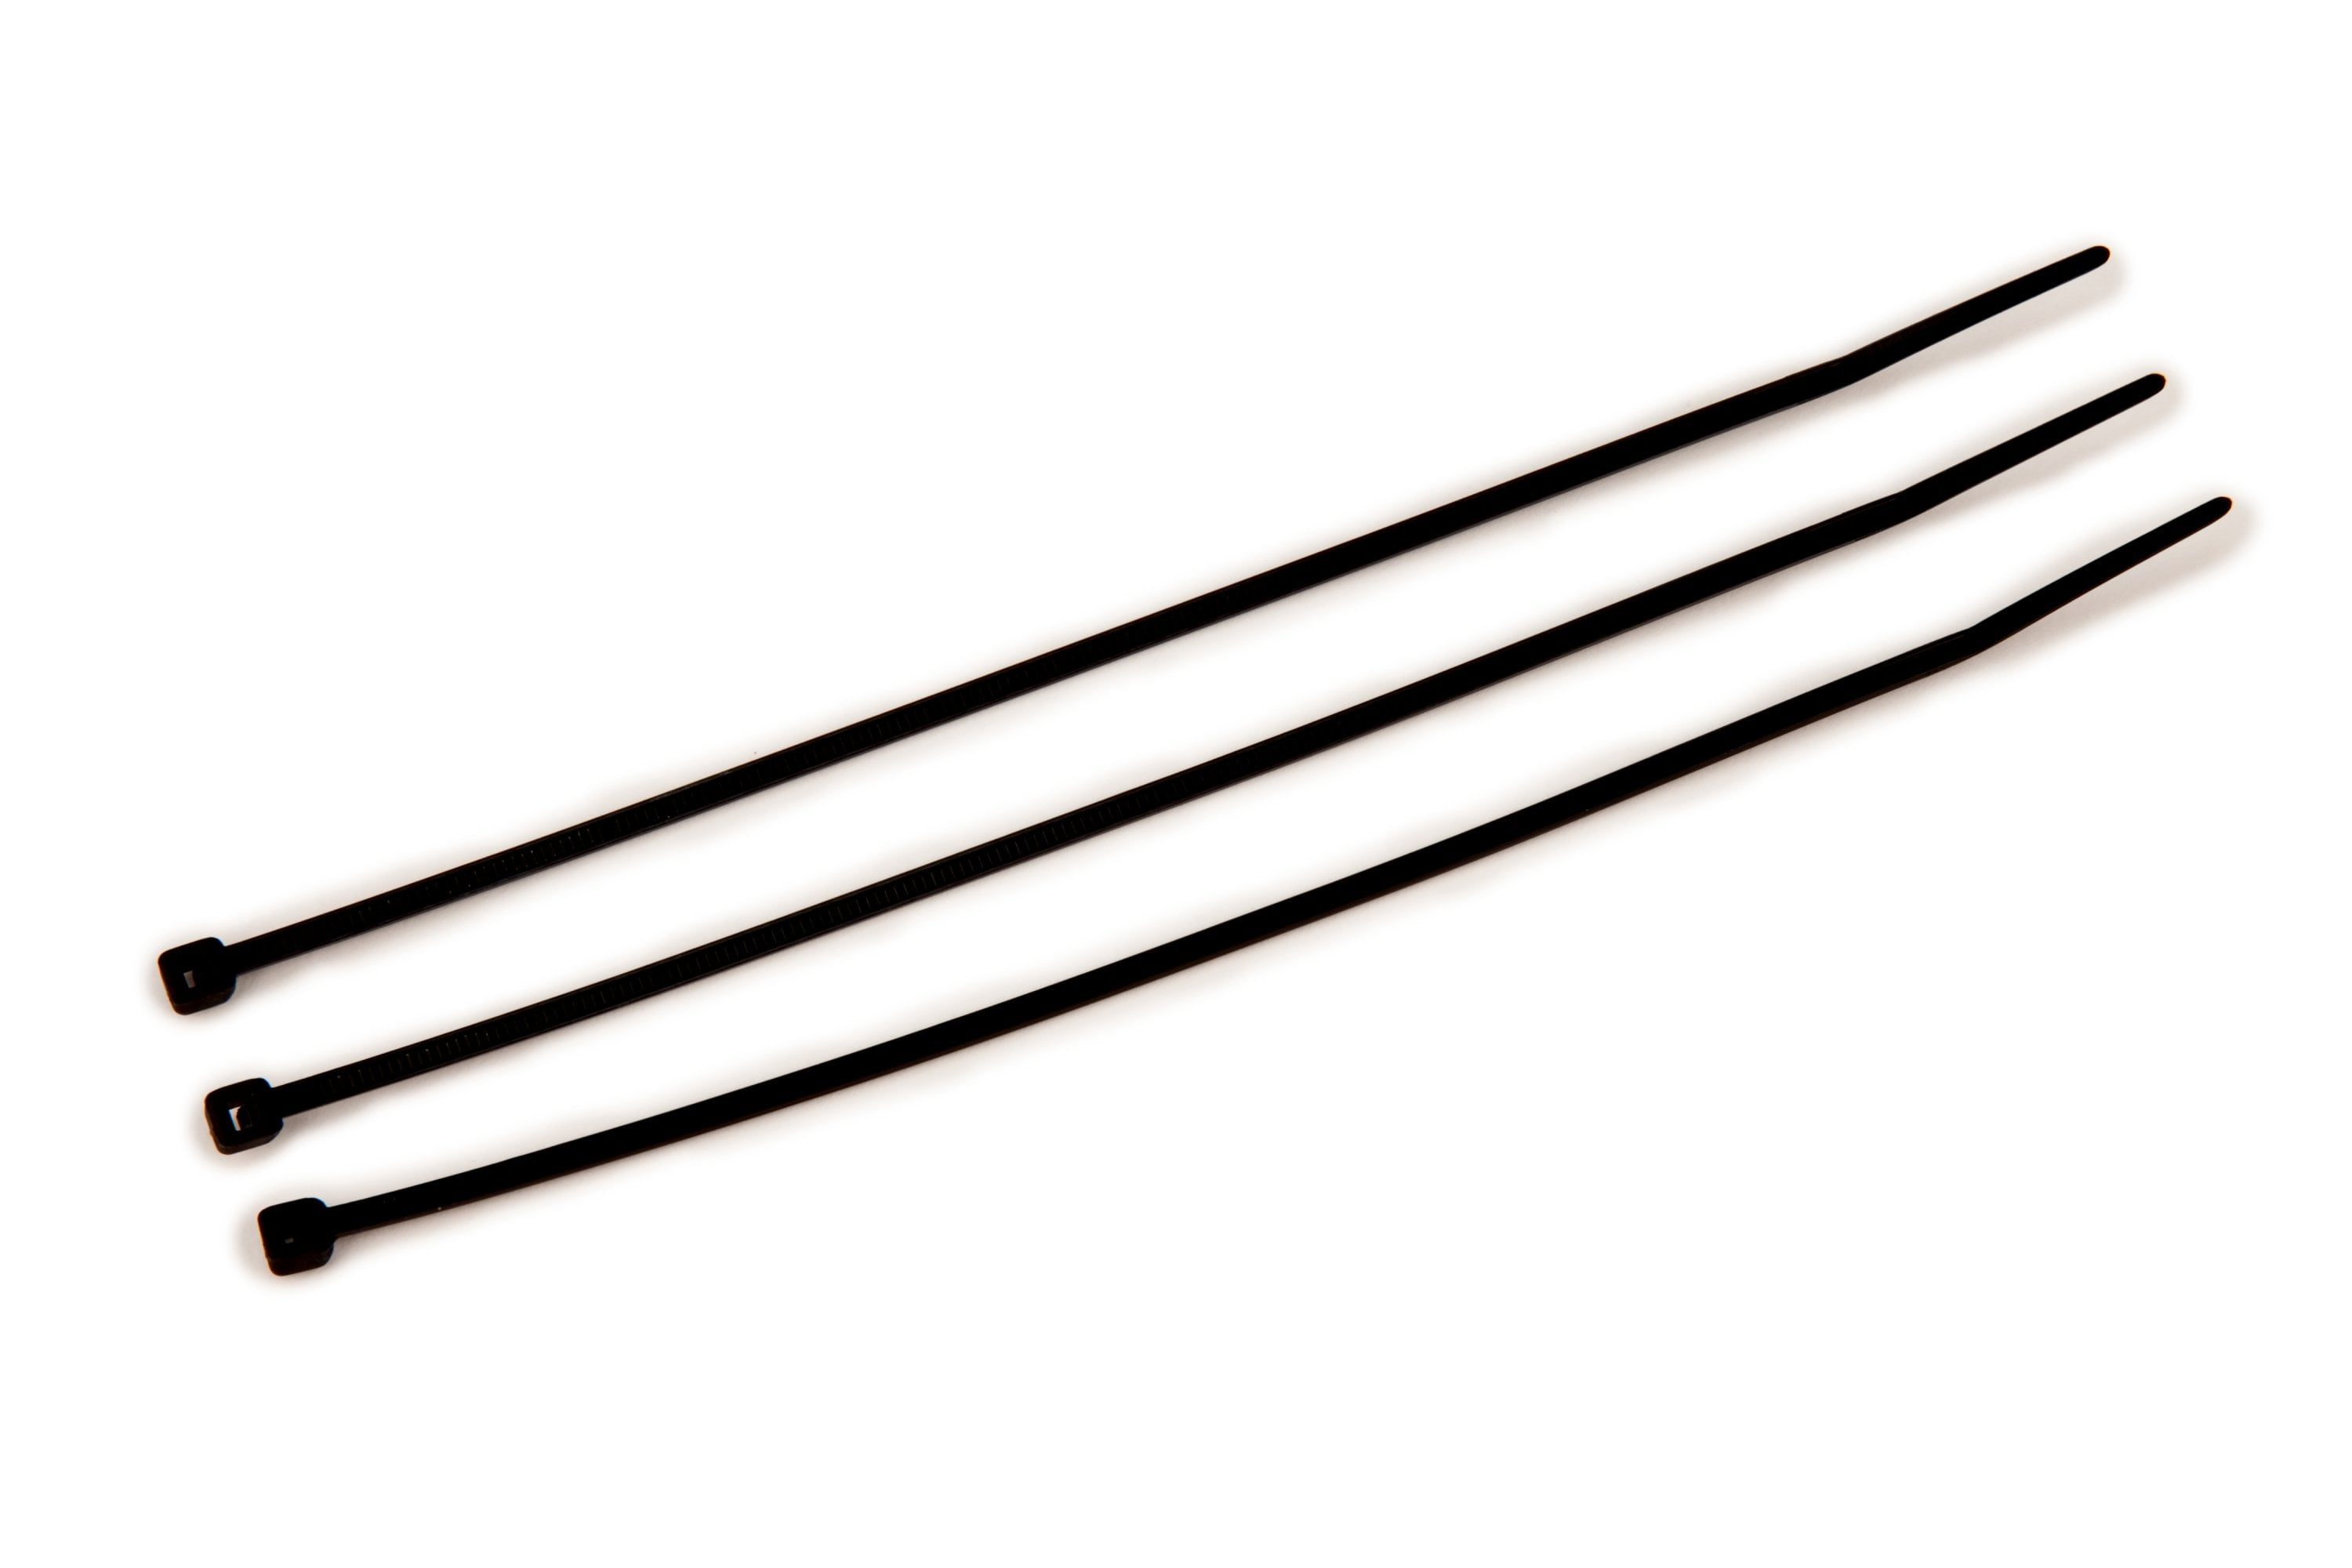 3mtm-cable-ties-ct6bk18